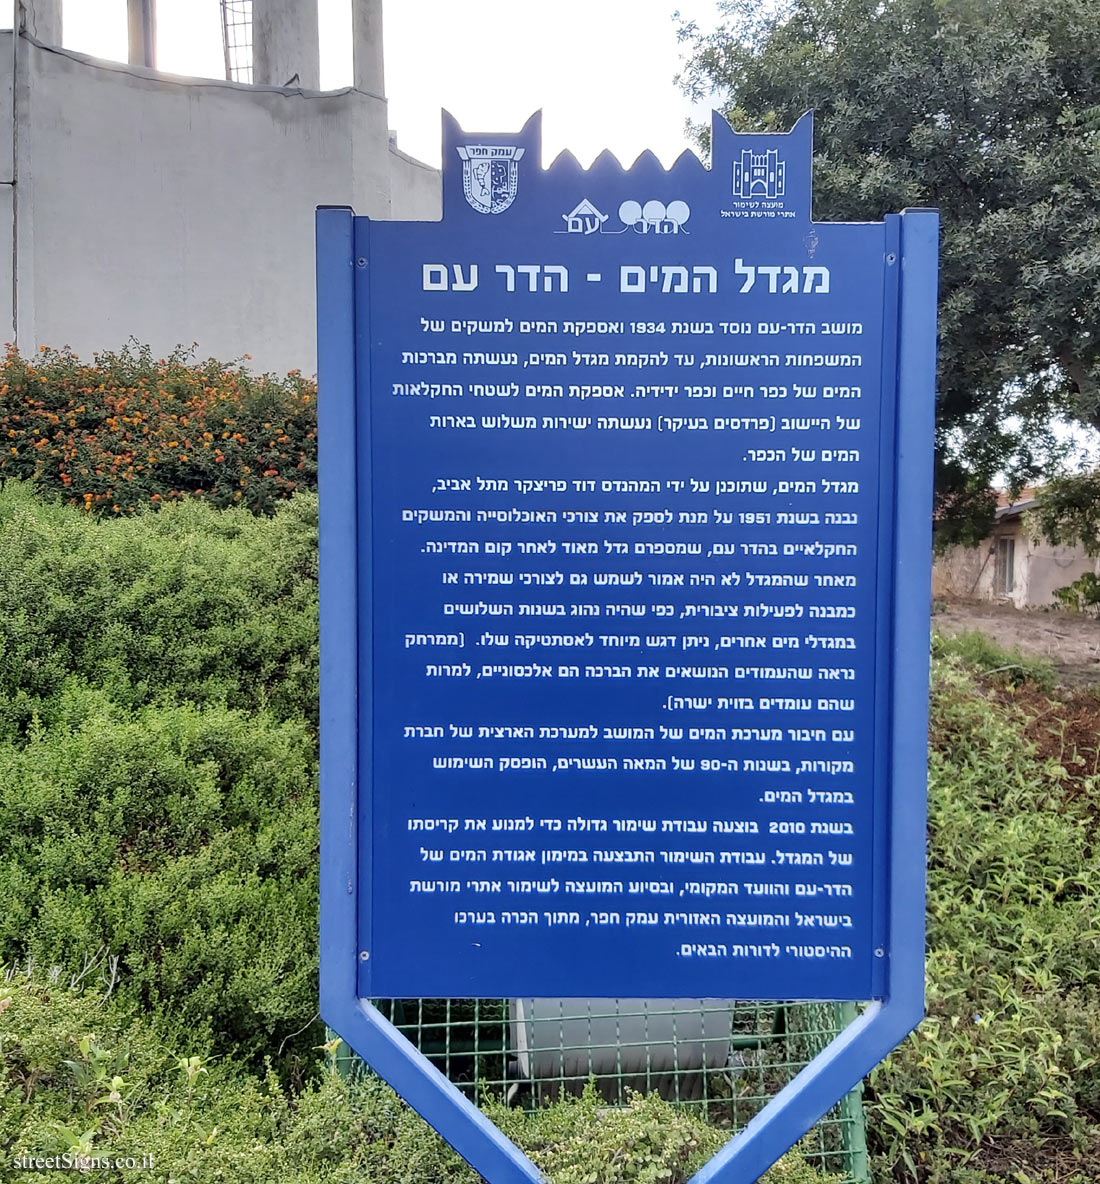 Hadar Am - Heritage Sites in Israel - Water tower